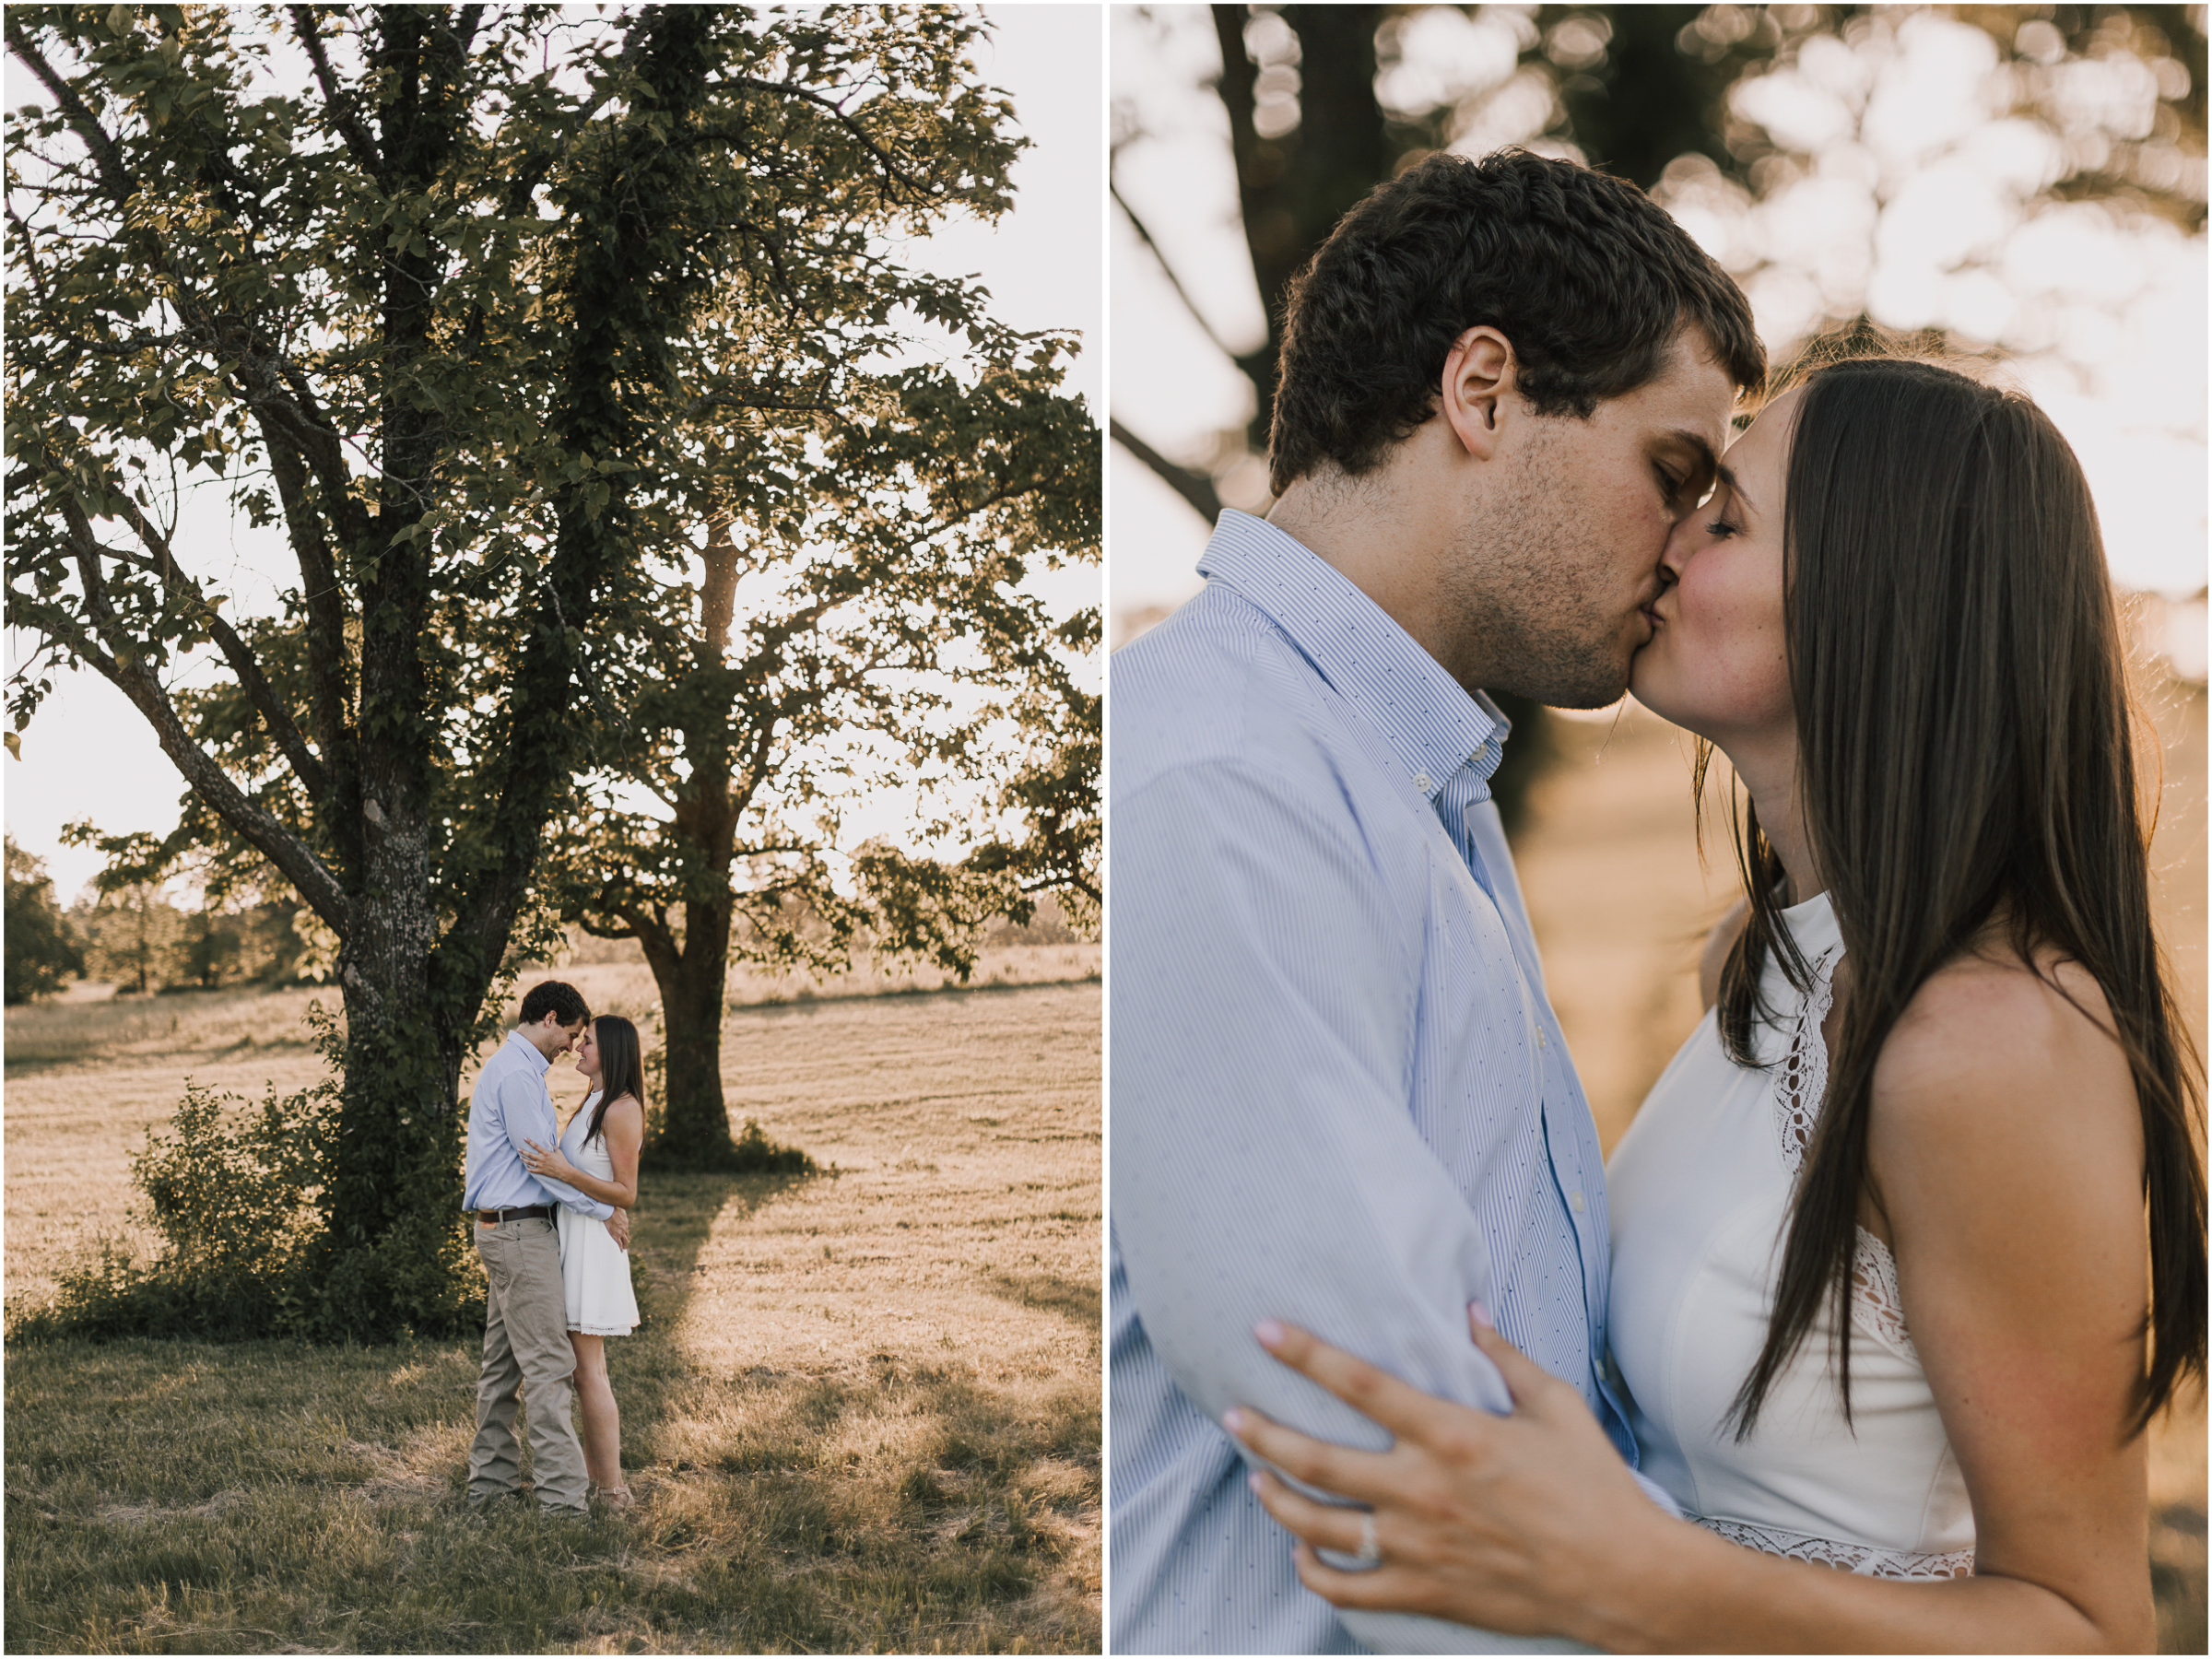 alyssa barletter photography shawnee mission park summer rustic done right engagement session-21.jpg